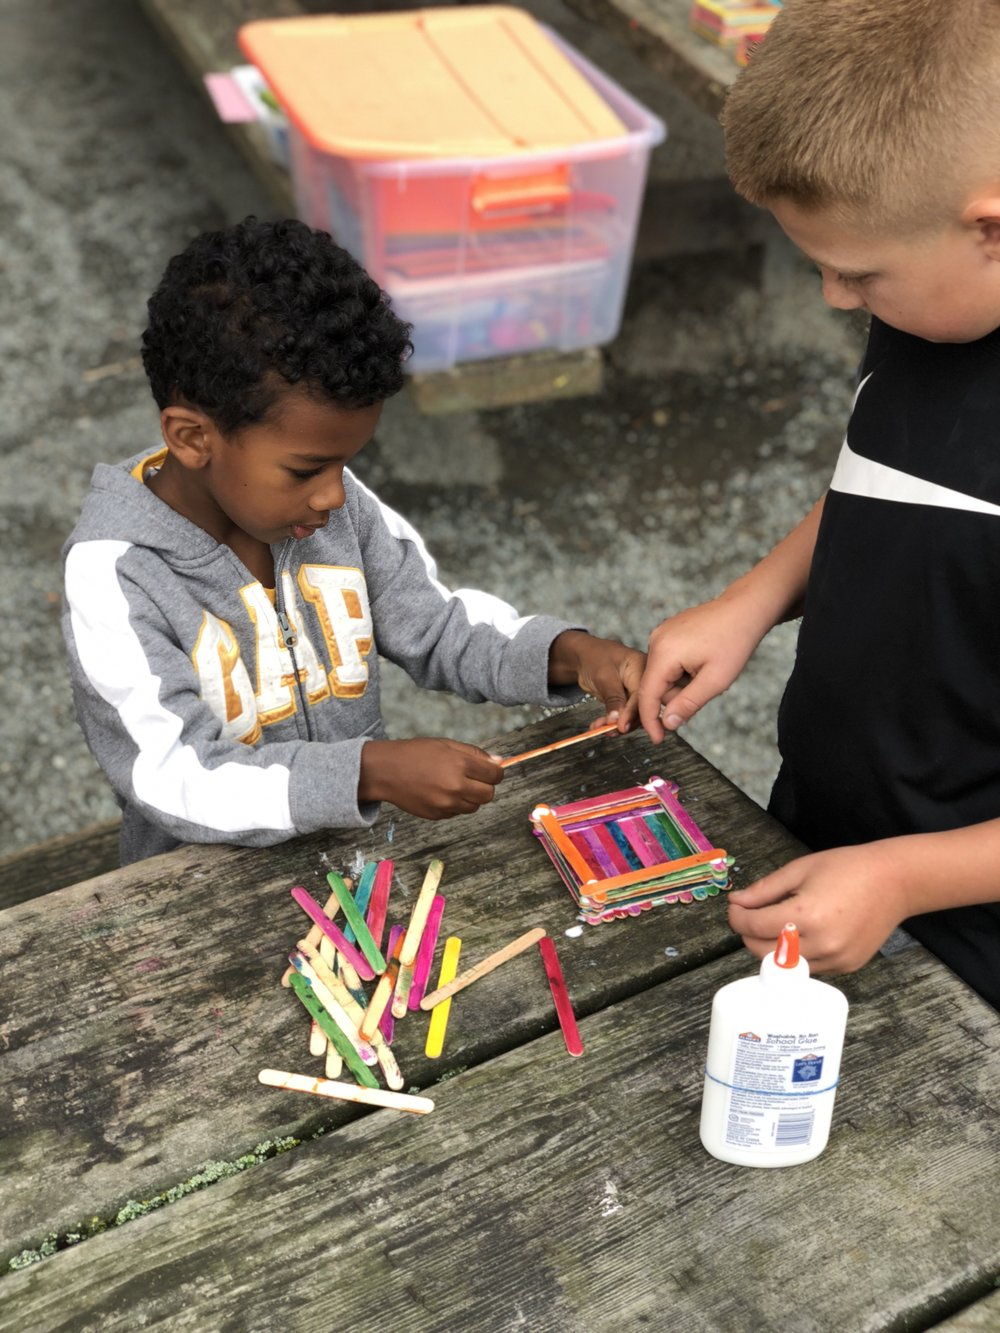 ARTS - DAILY ART PROJECTS THAT NURTURE CREATIVITY THROUGH PAINTING, BUILDING AND MAKING PRACTICAL PROJECTS LIKE TREASURE BOXES, CLOCKS AND MUCH MORE!